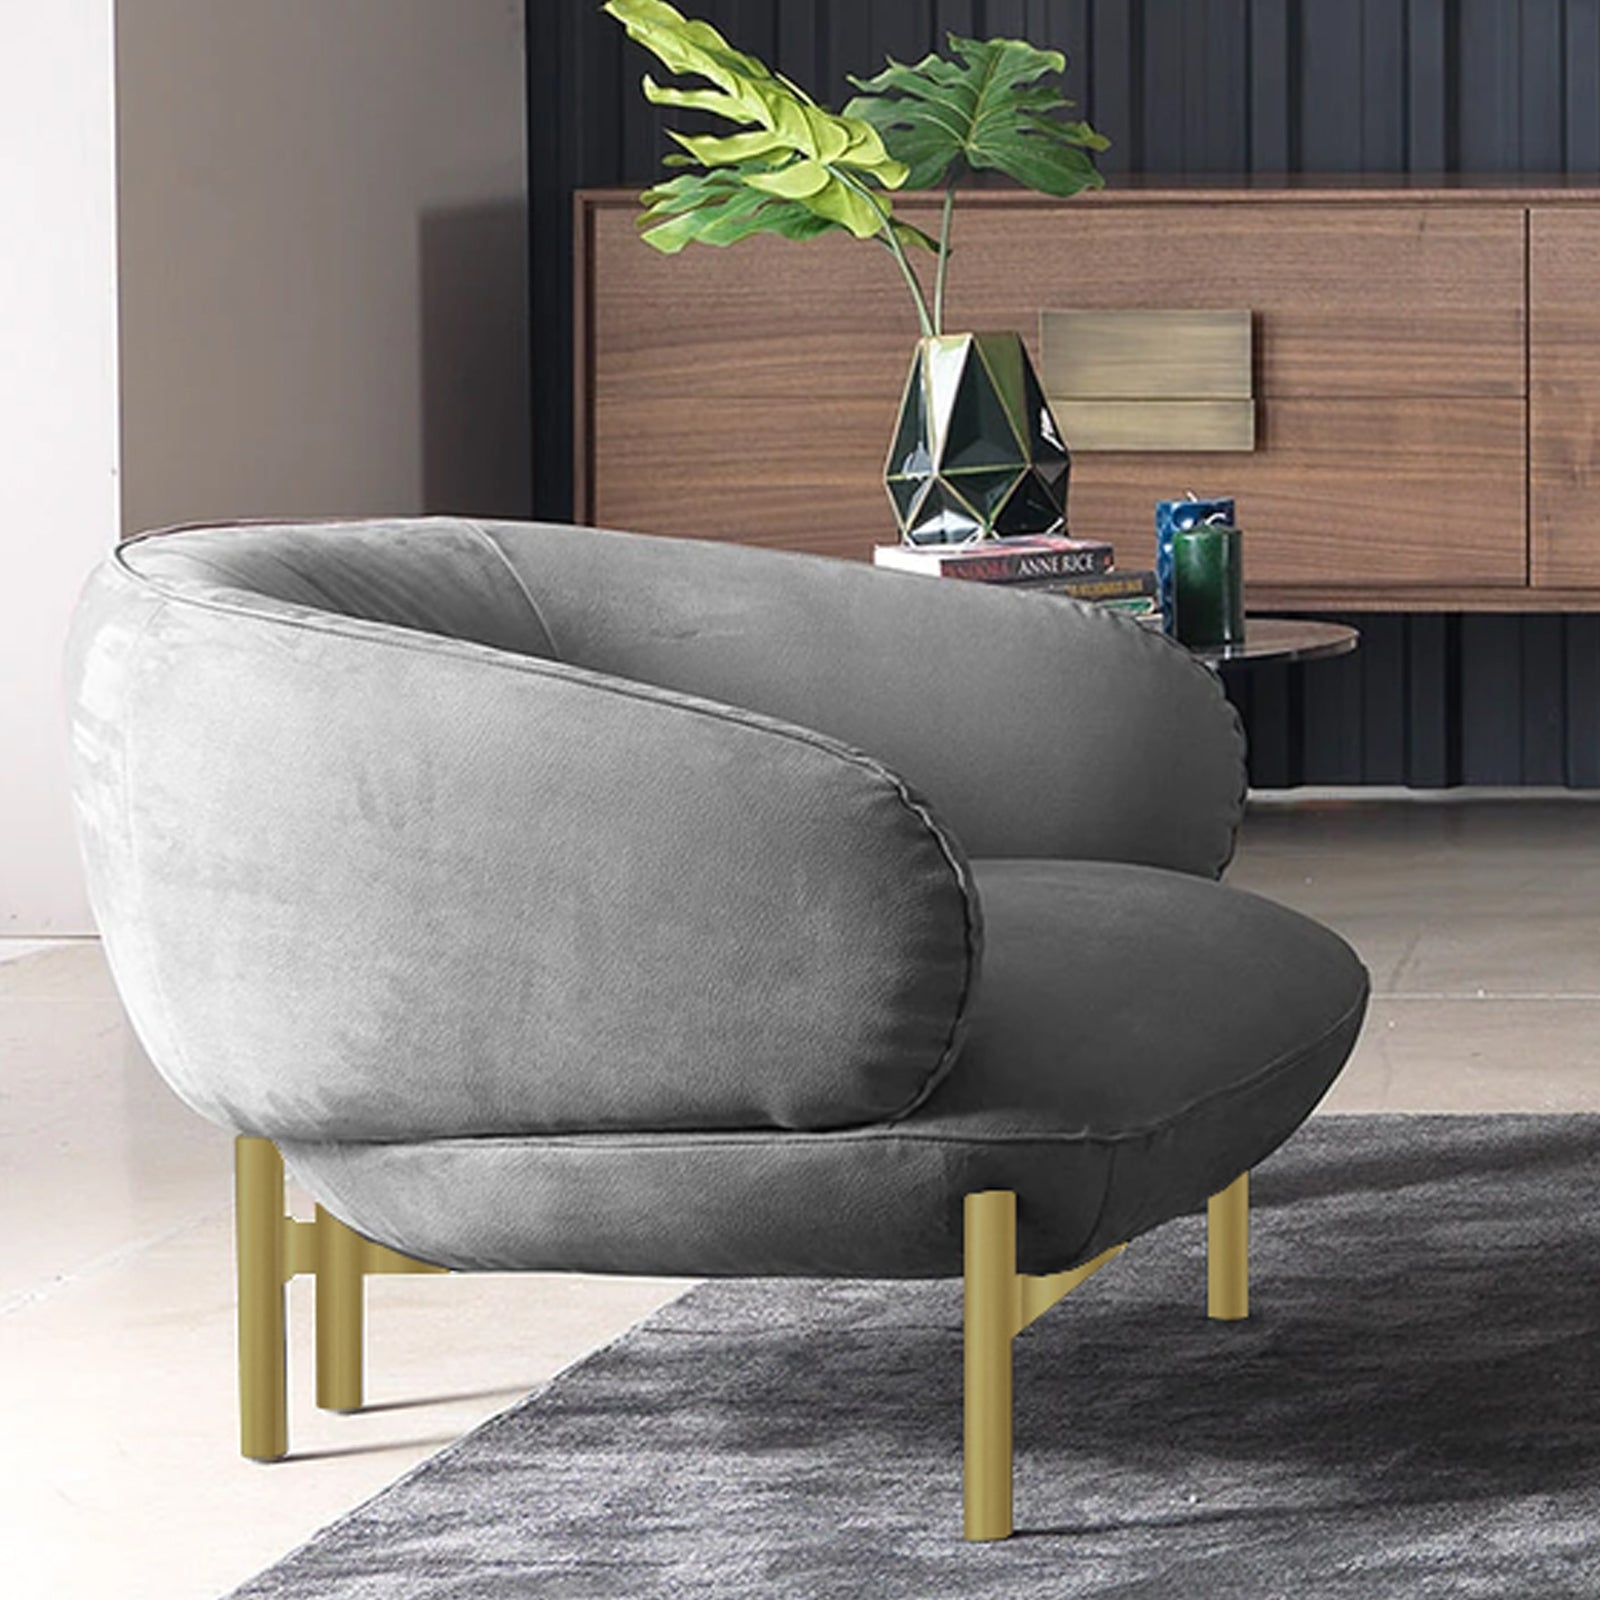 NEXT Armchair   NEXT002-Chair-G -  كرسي بذراعين نيكست - Shop Online Furniture and Home Decor Store in Dubai, UAE at ebarza